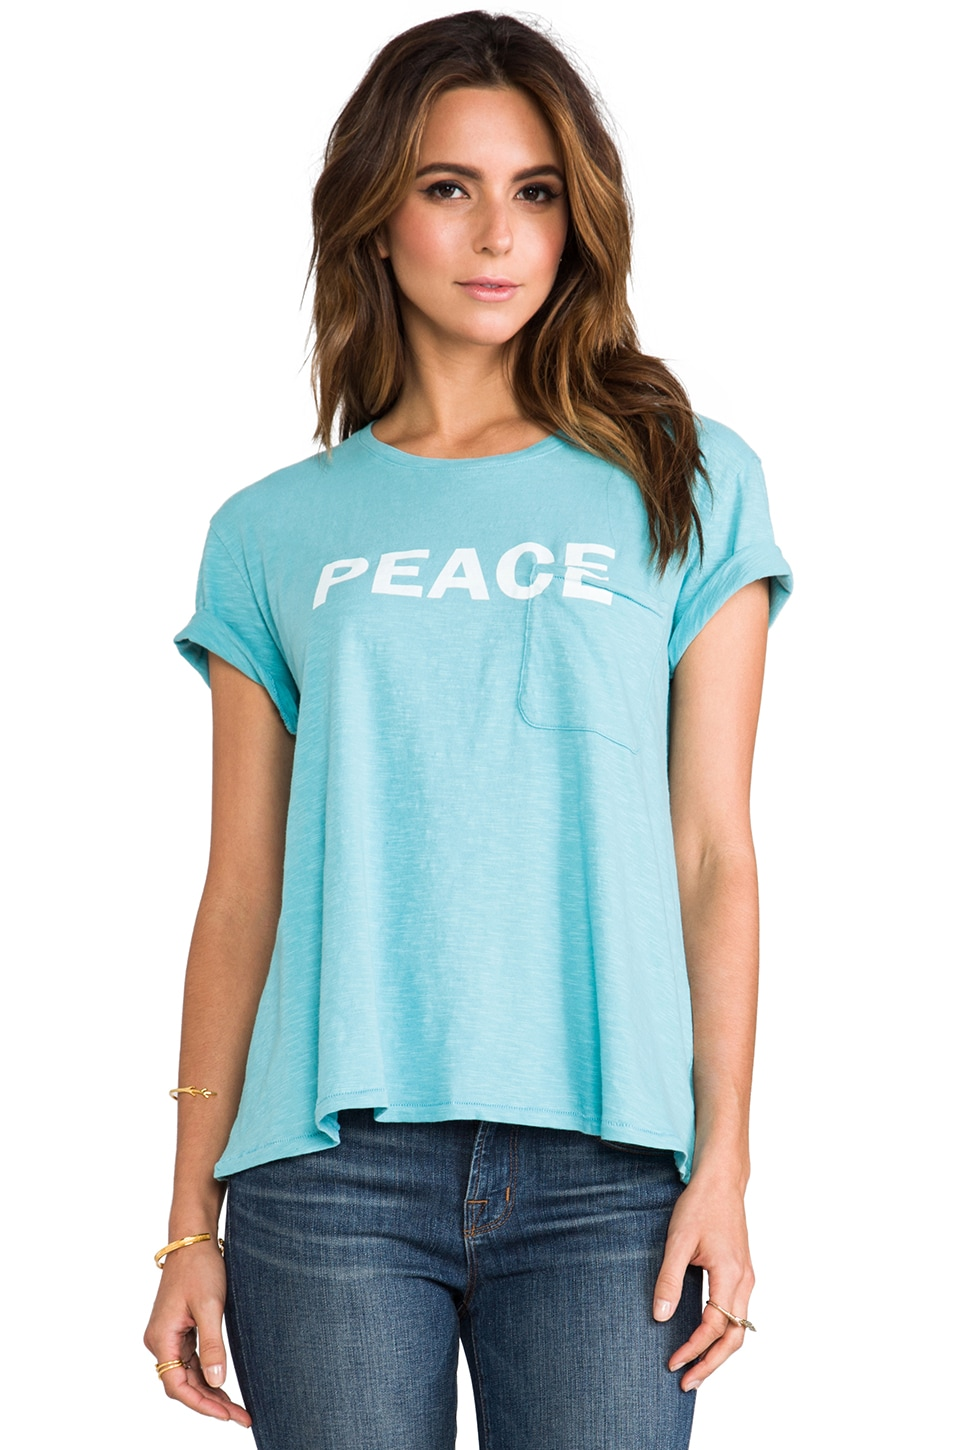 TEXTILE Elizabeth and James Peace Bowery Tee in Celeste Blue/White